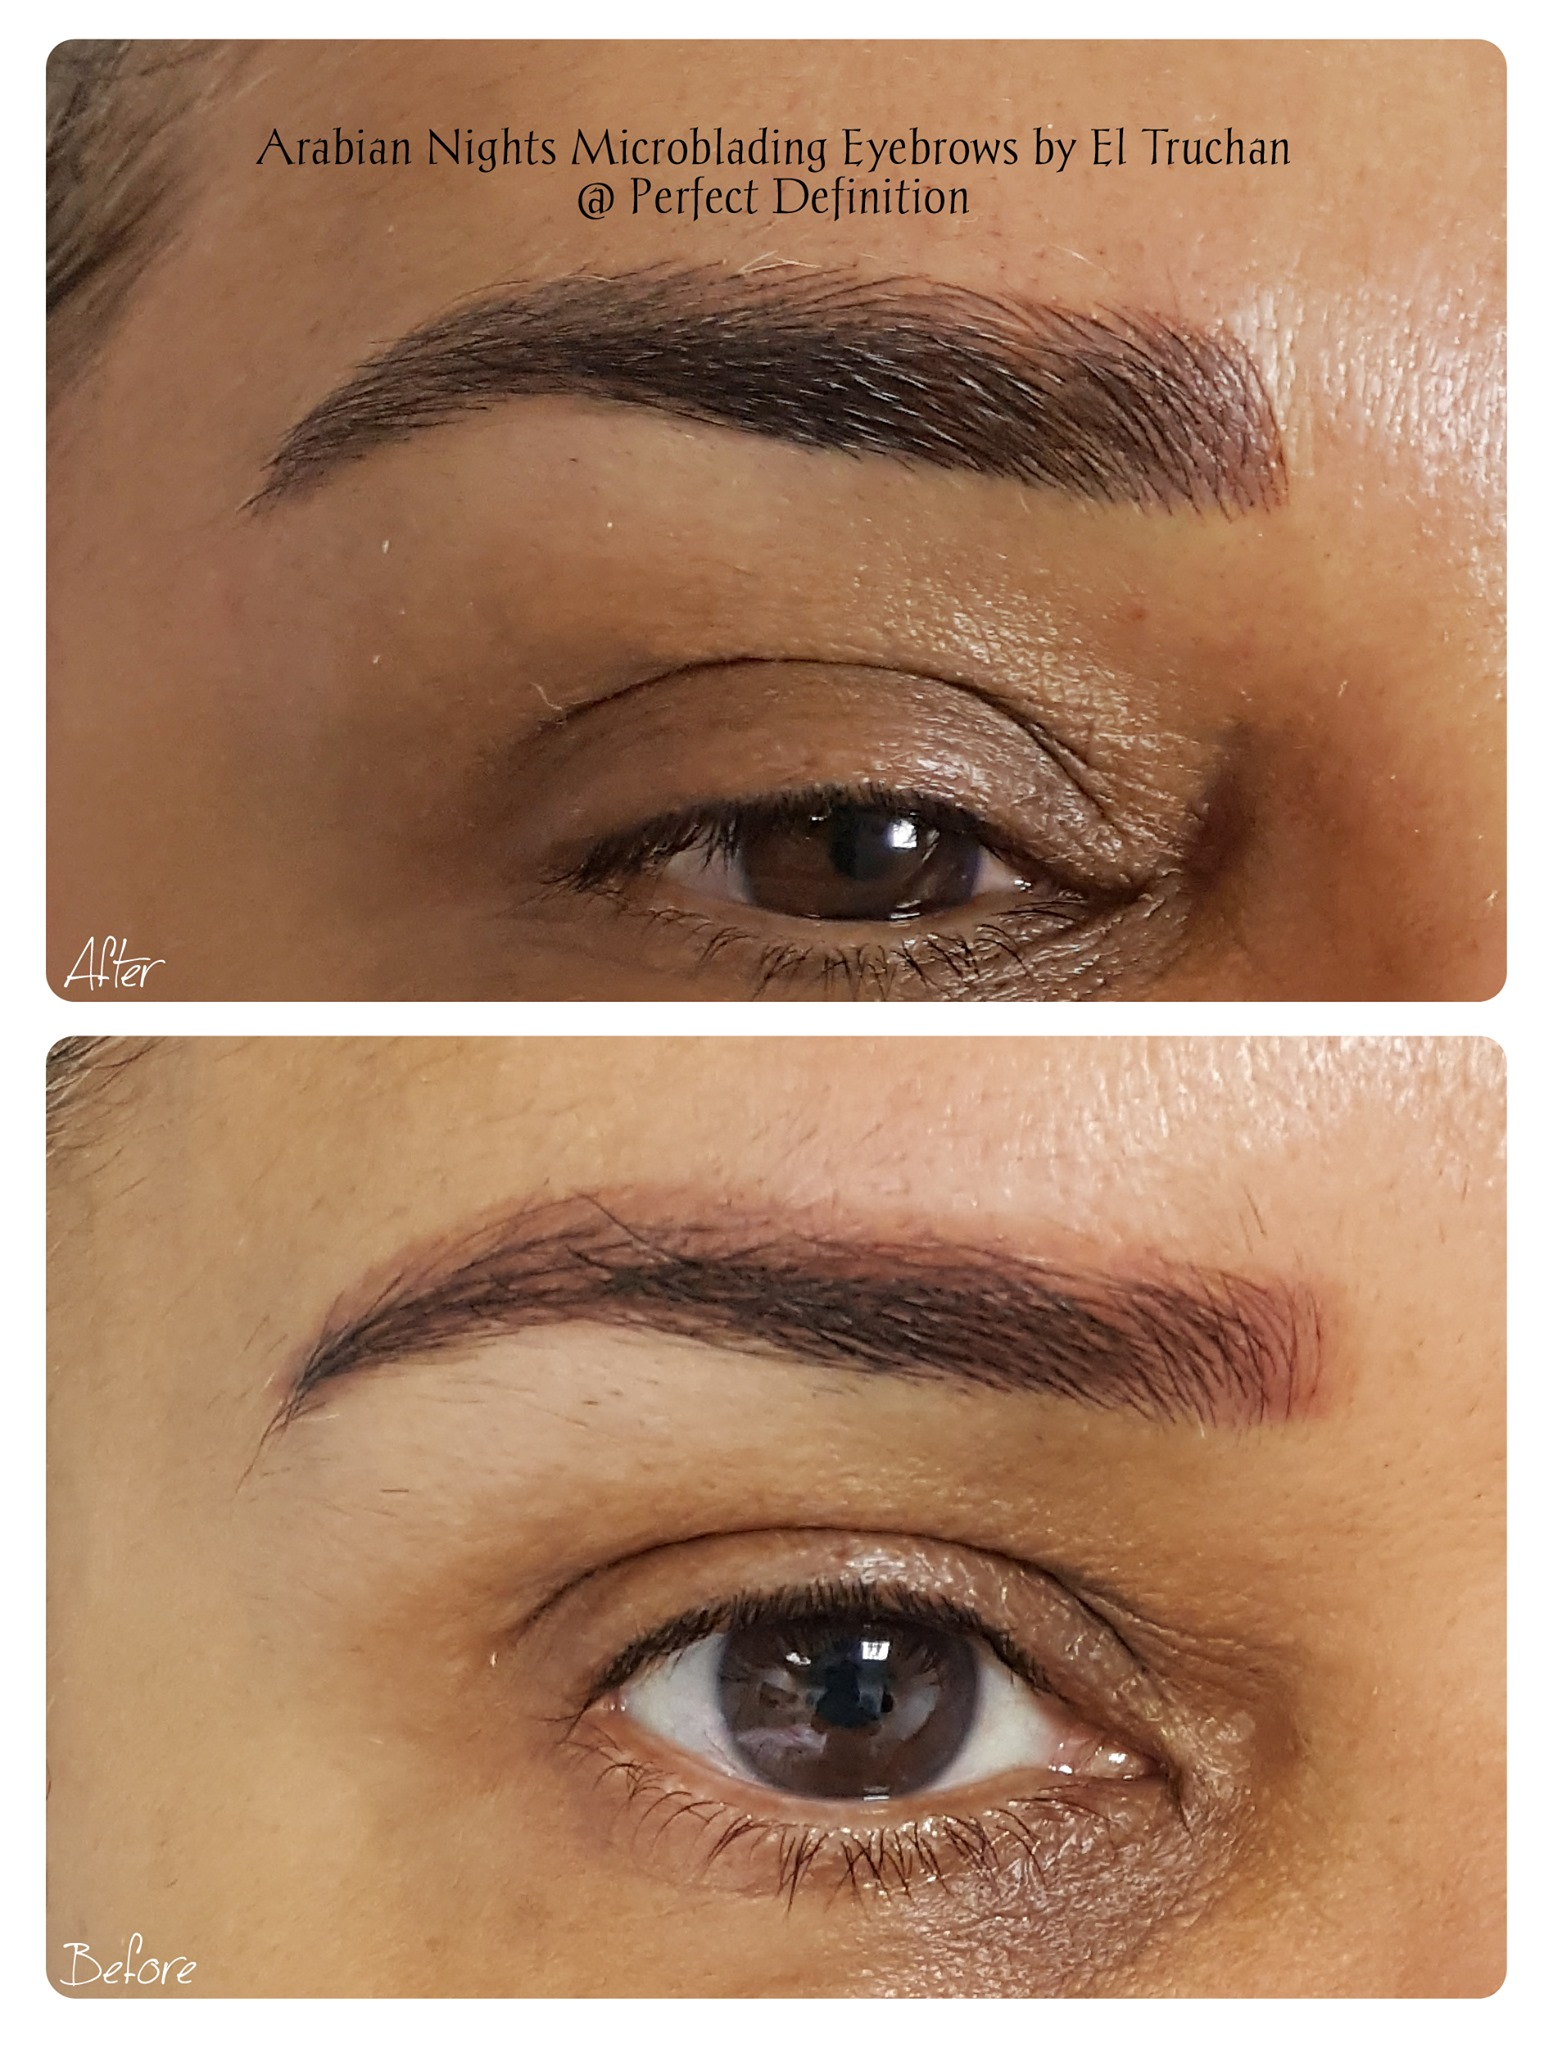 Arabian Nights Microblading Eyebrows by